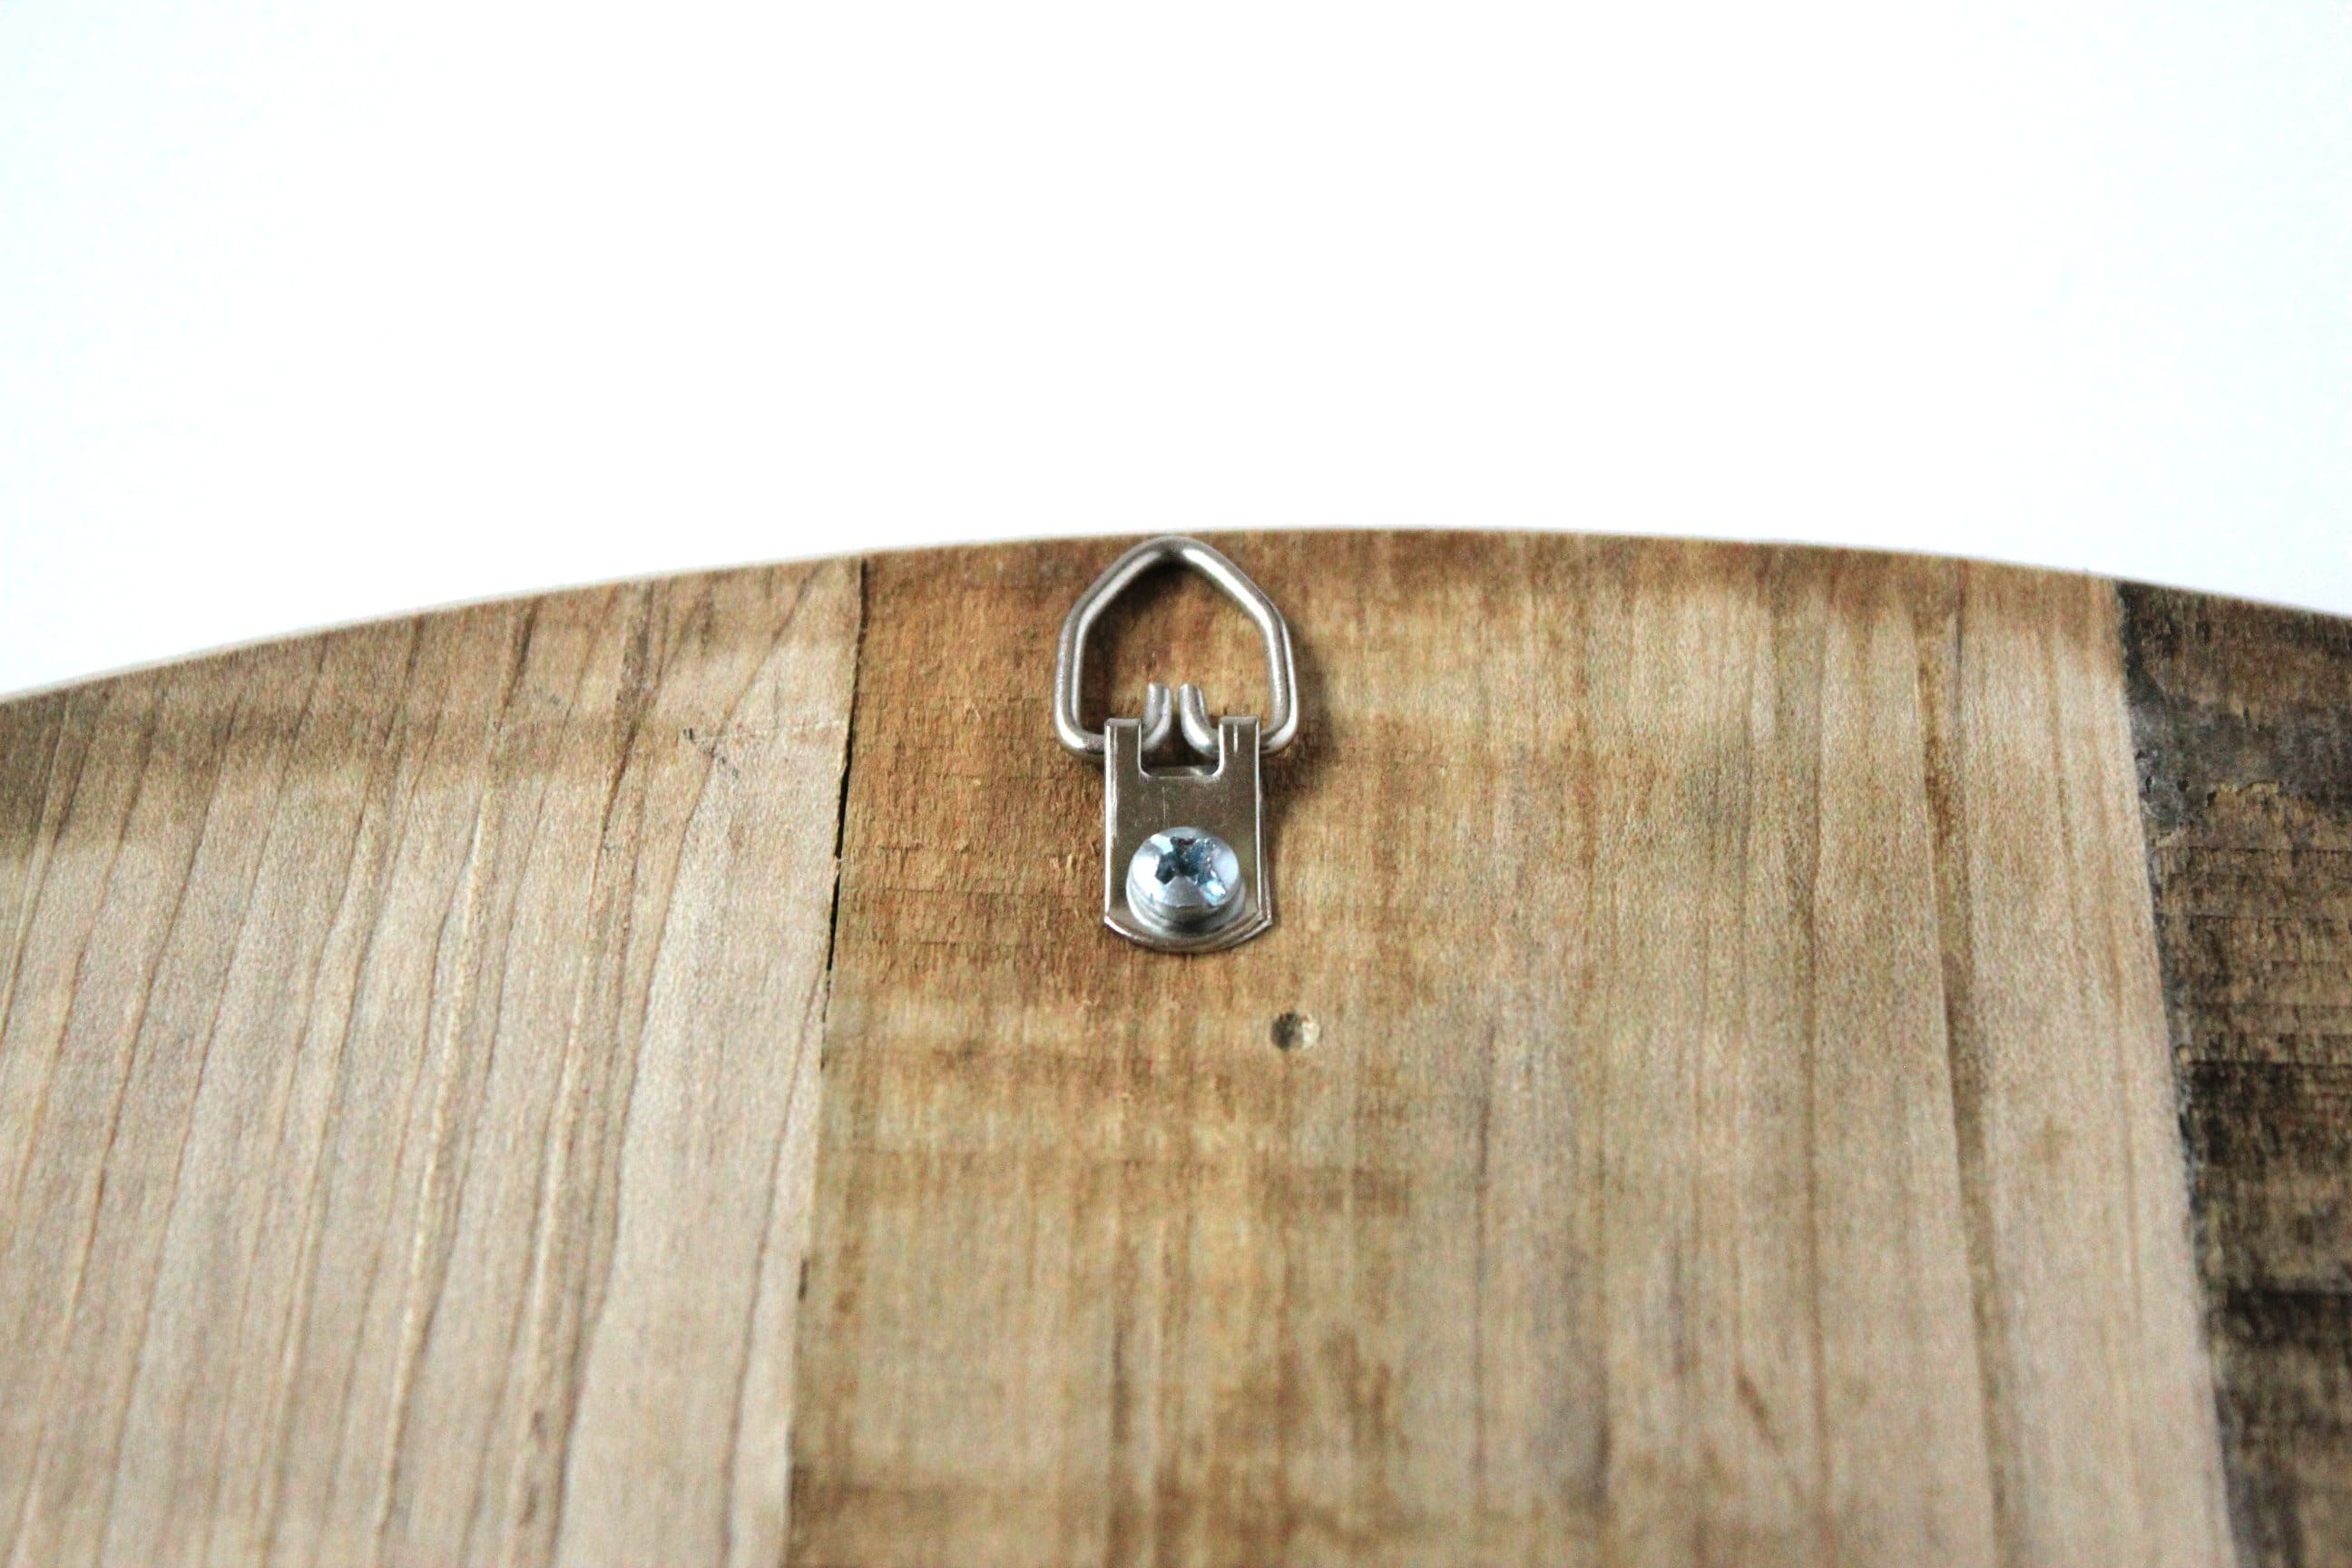 Back of wine holder shows hanging hook